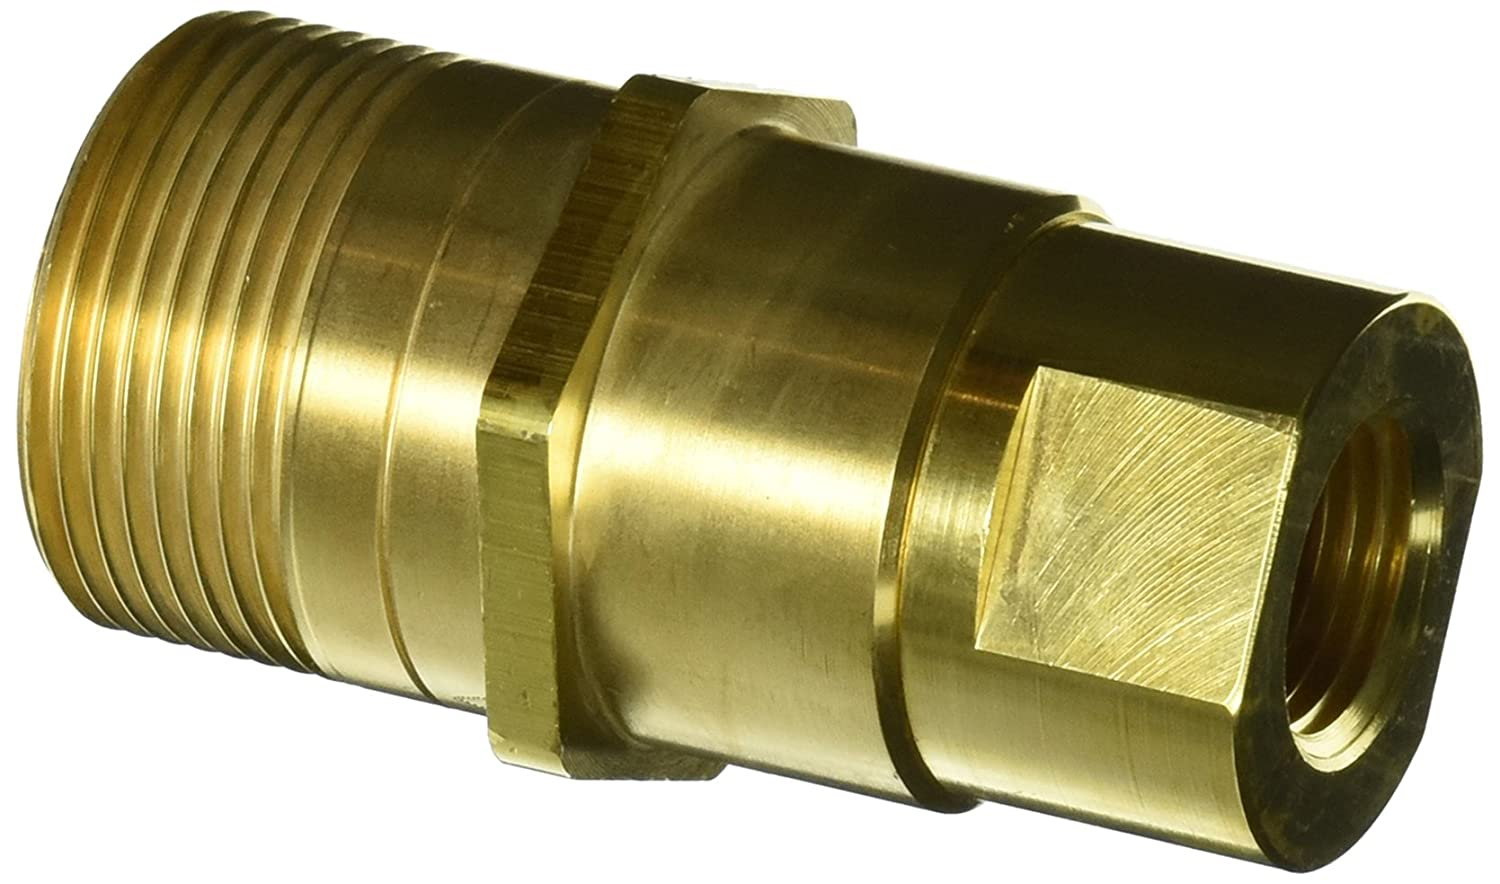 1//2 Port Size 1//2-14 NPT Female 5//8 Body Eaton Hansen 5100-S2-10B Brass Thread-to-Connect Hydraulic Fitting with Valve Plug